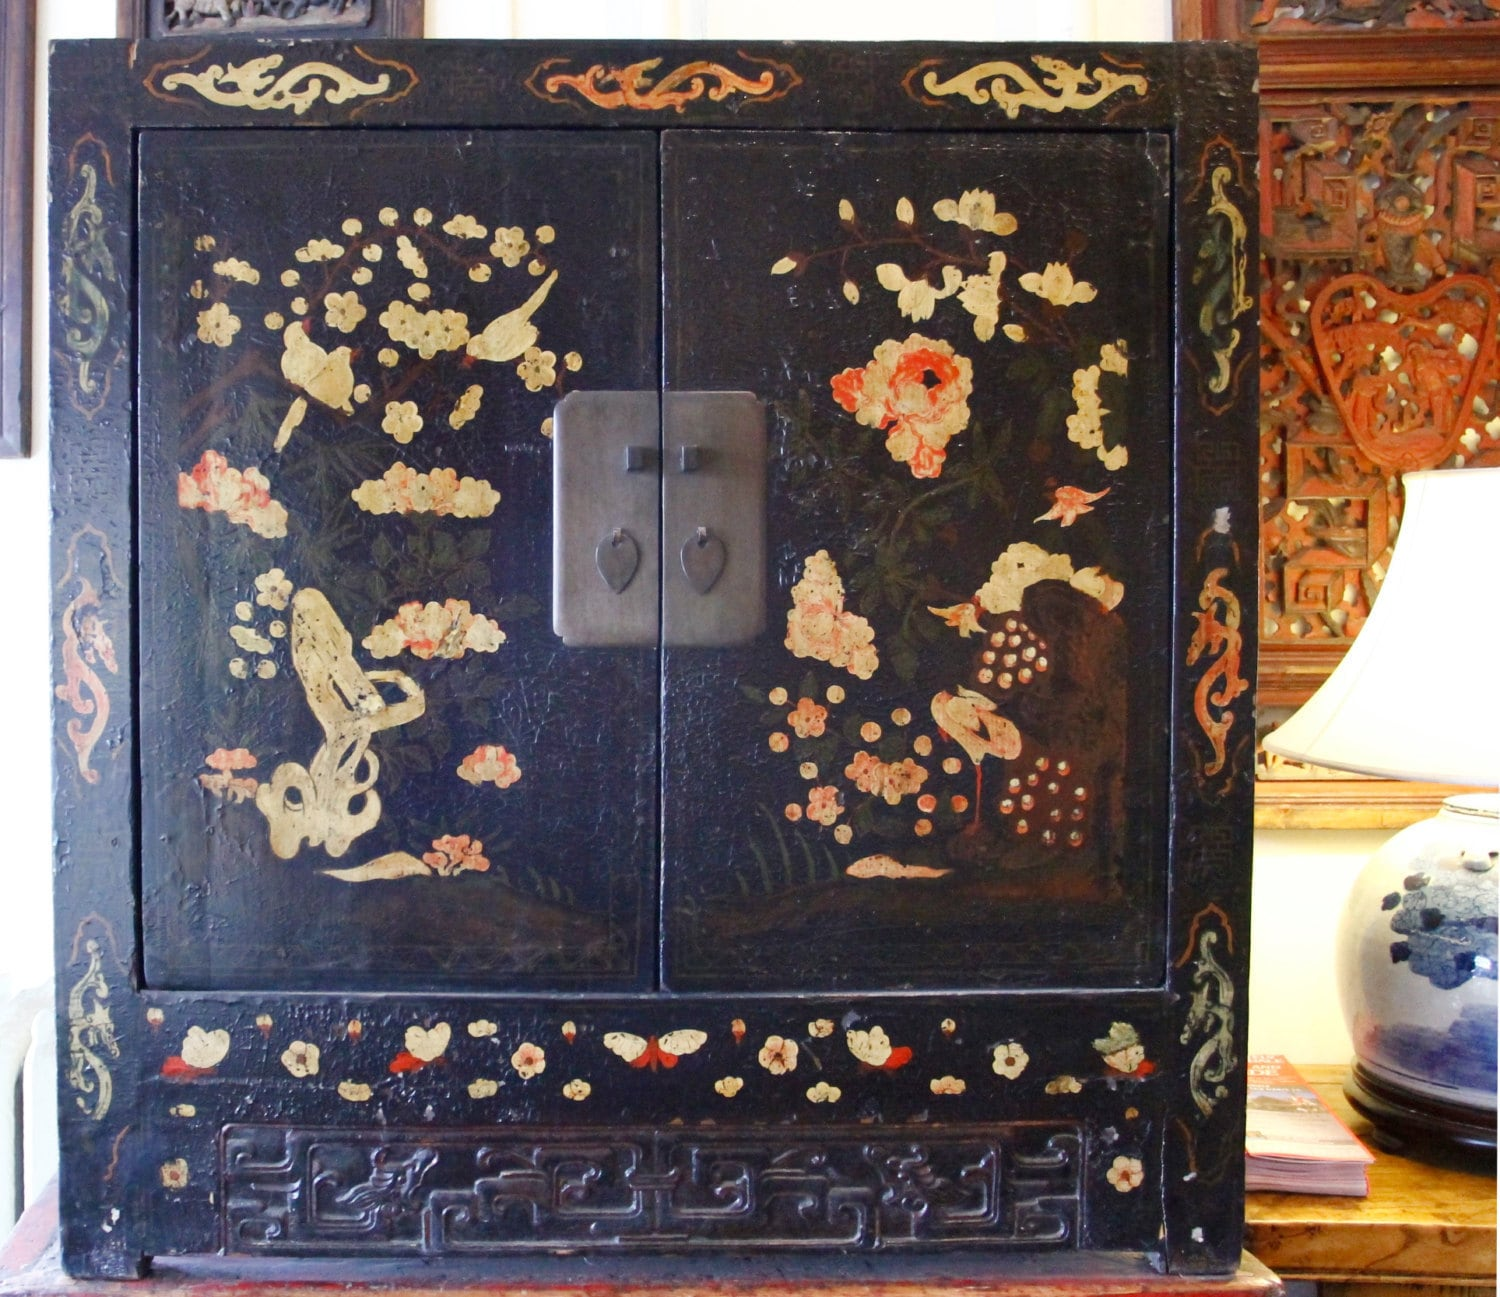 🔎zoom - Antique Black Lacquer Cabinet With Motif Strange Imports